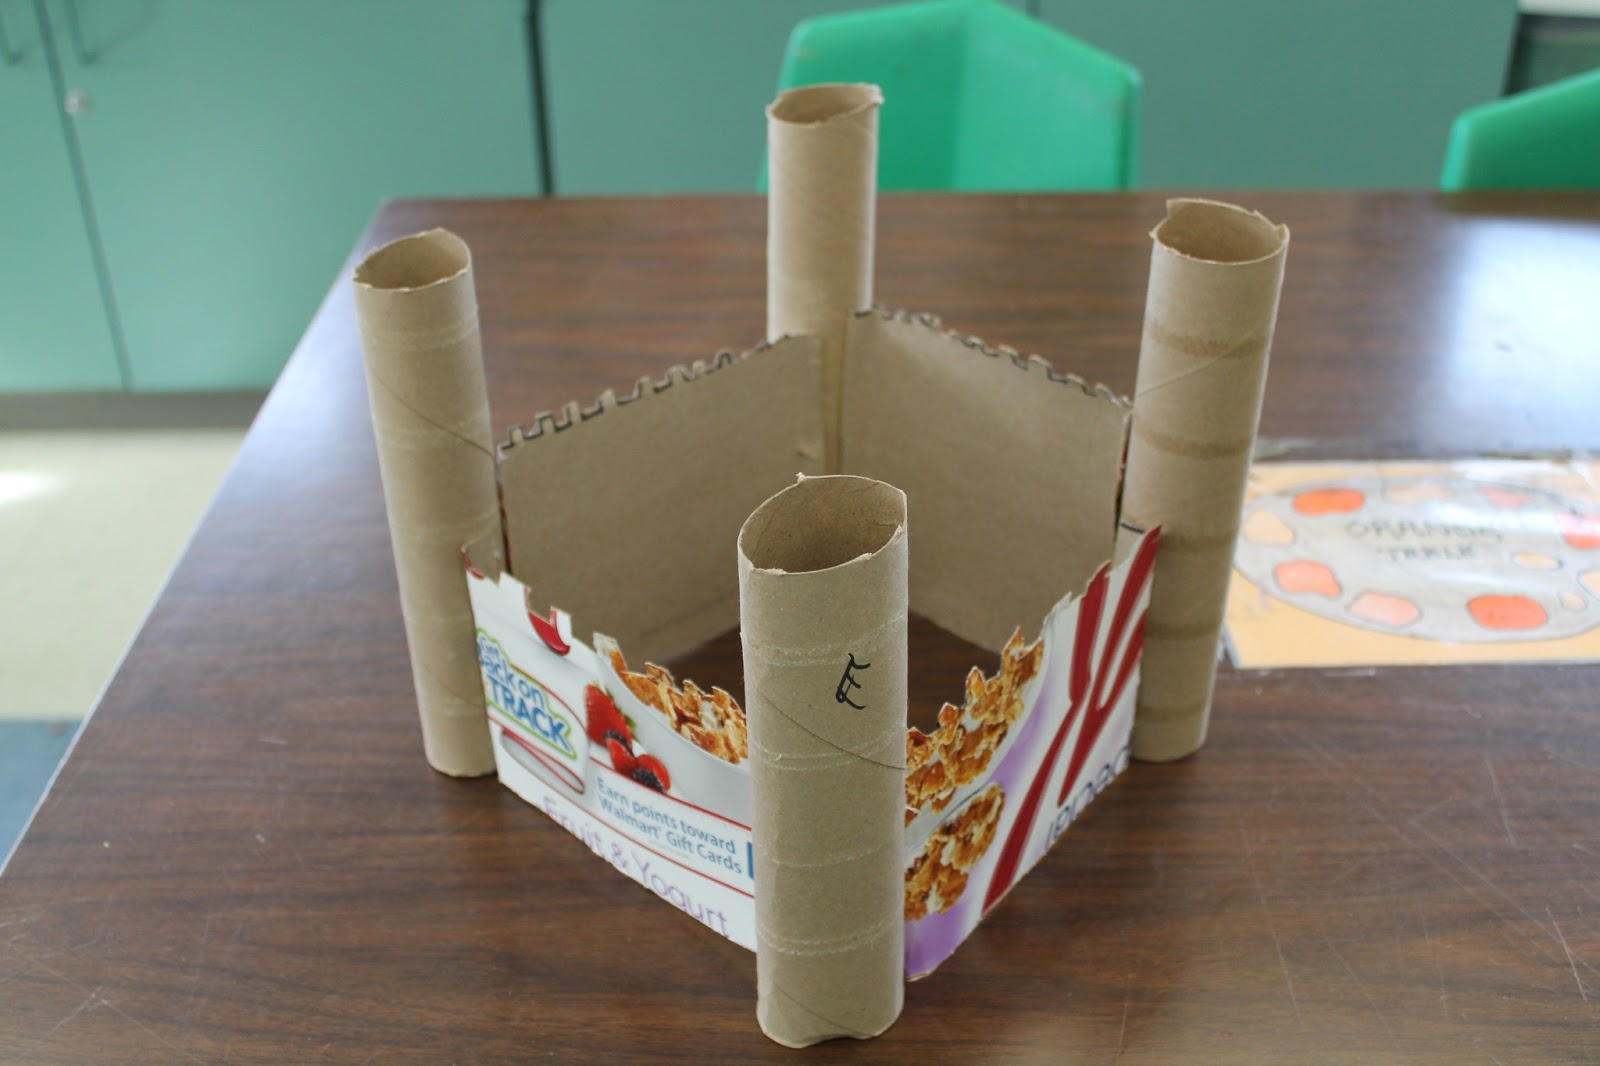 Art room 104 in progress 3rd grade cardboard castle for What type of cardboard are cereal boxes made of